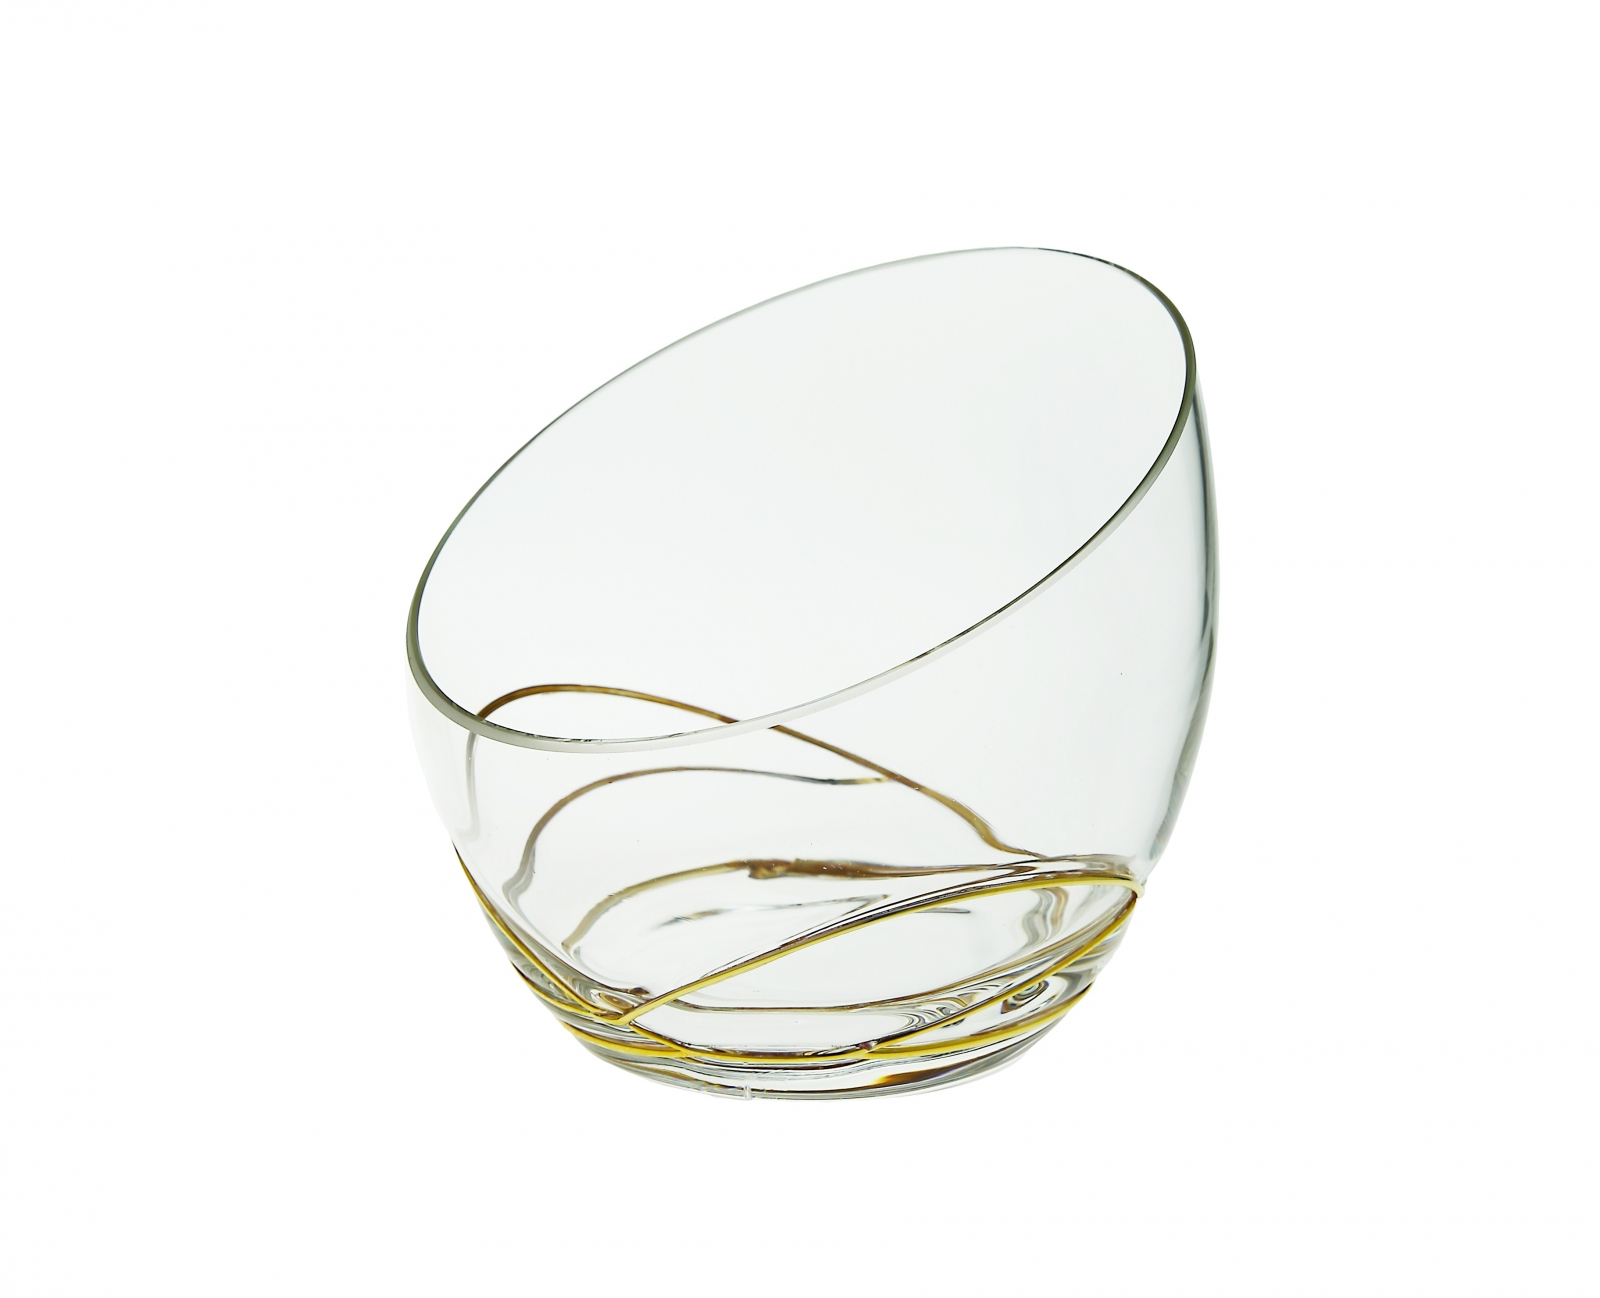 Glass Egg Shaped bowl with Swirl Gold Design